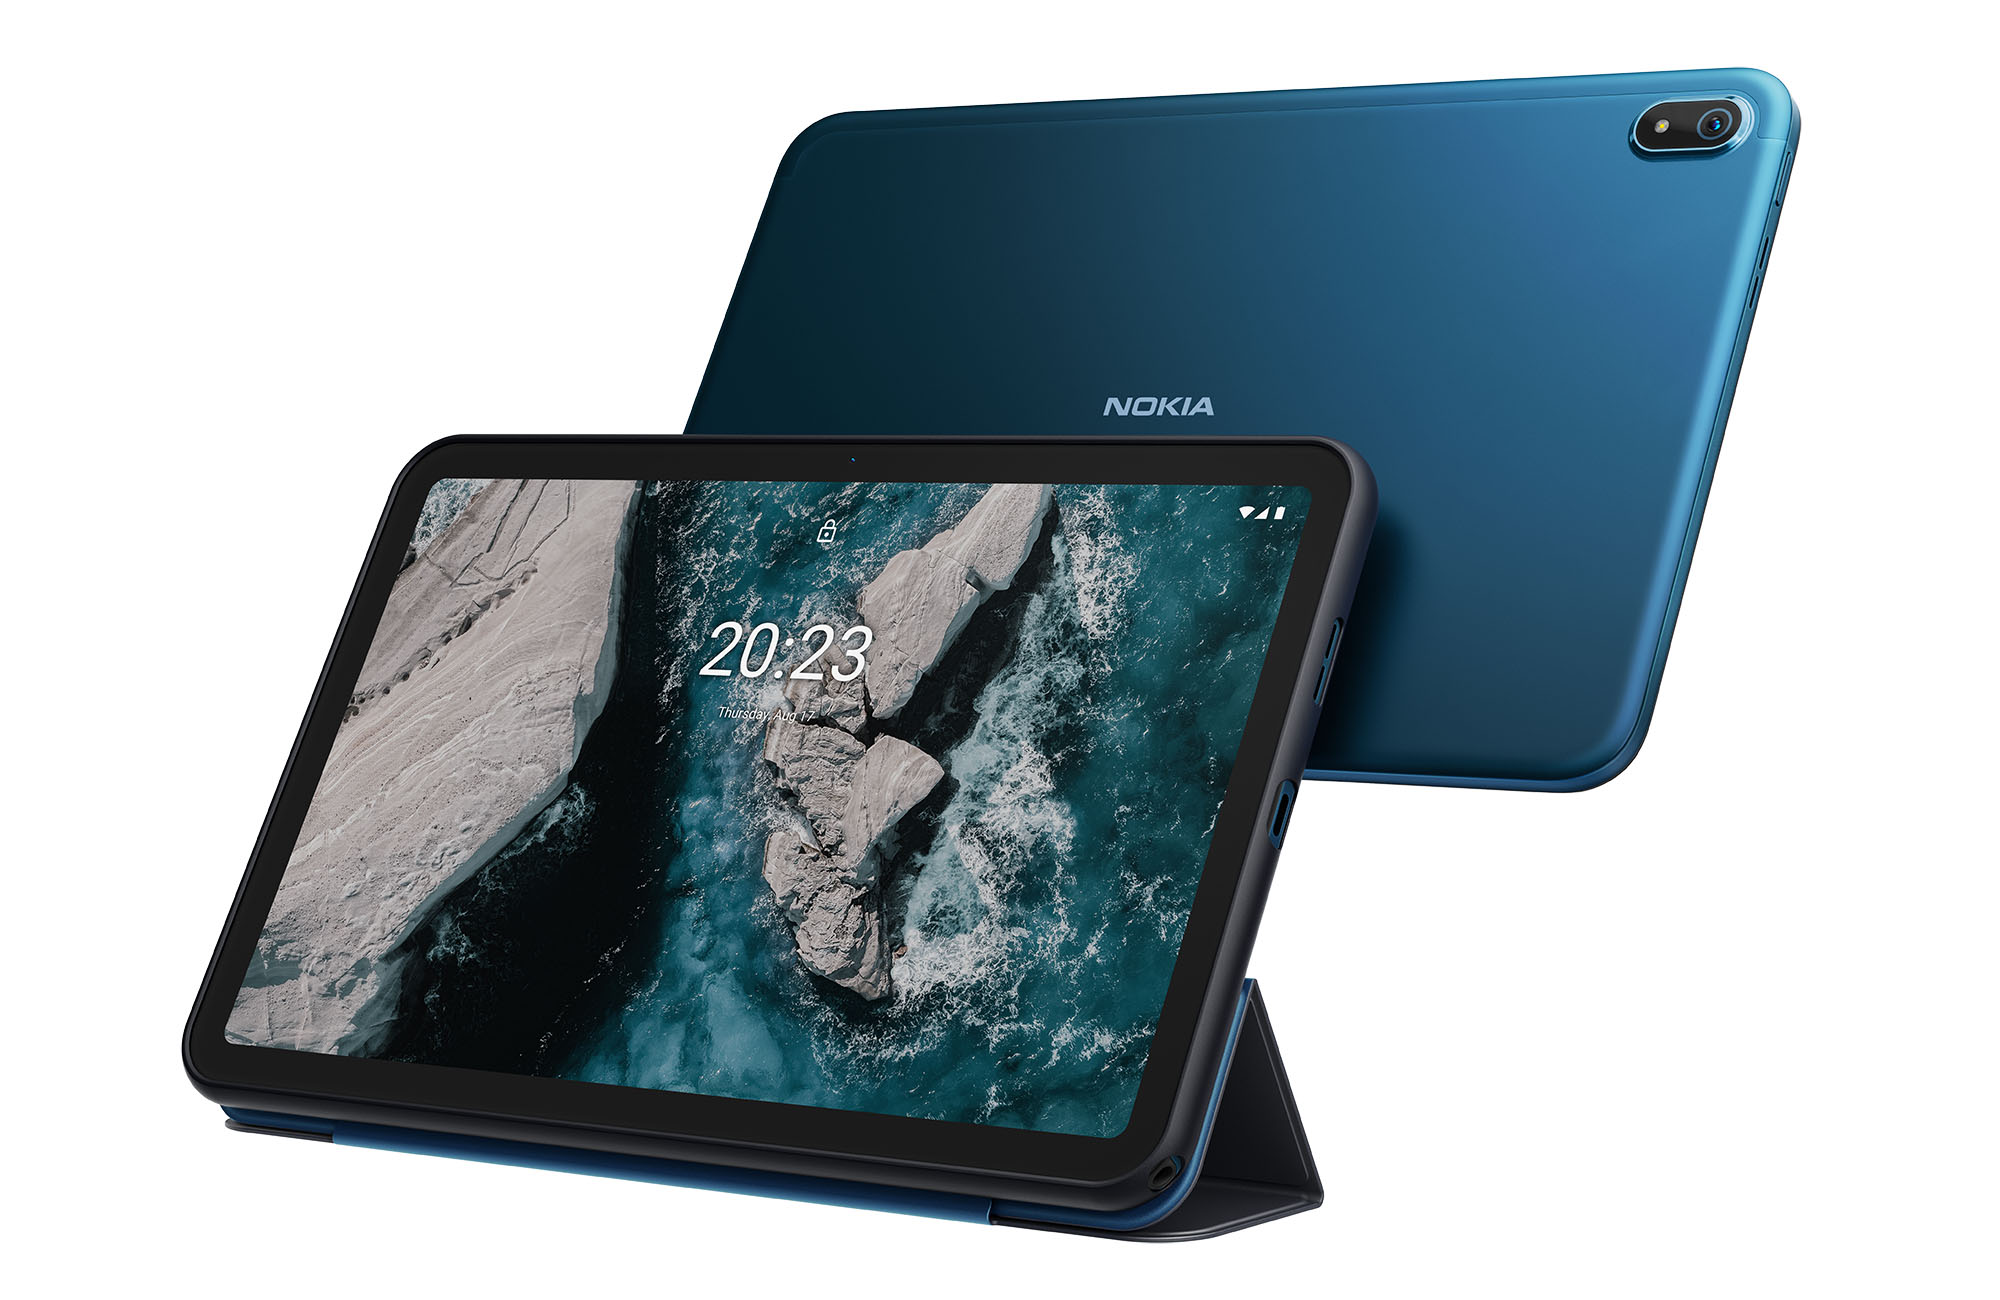 HMD and Nokia's first tablet has a humongous battery and costs $250